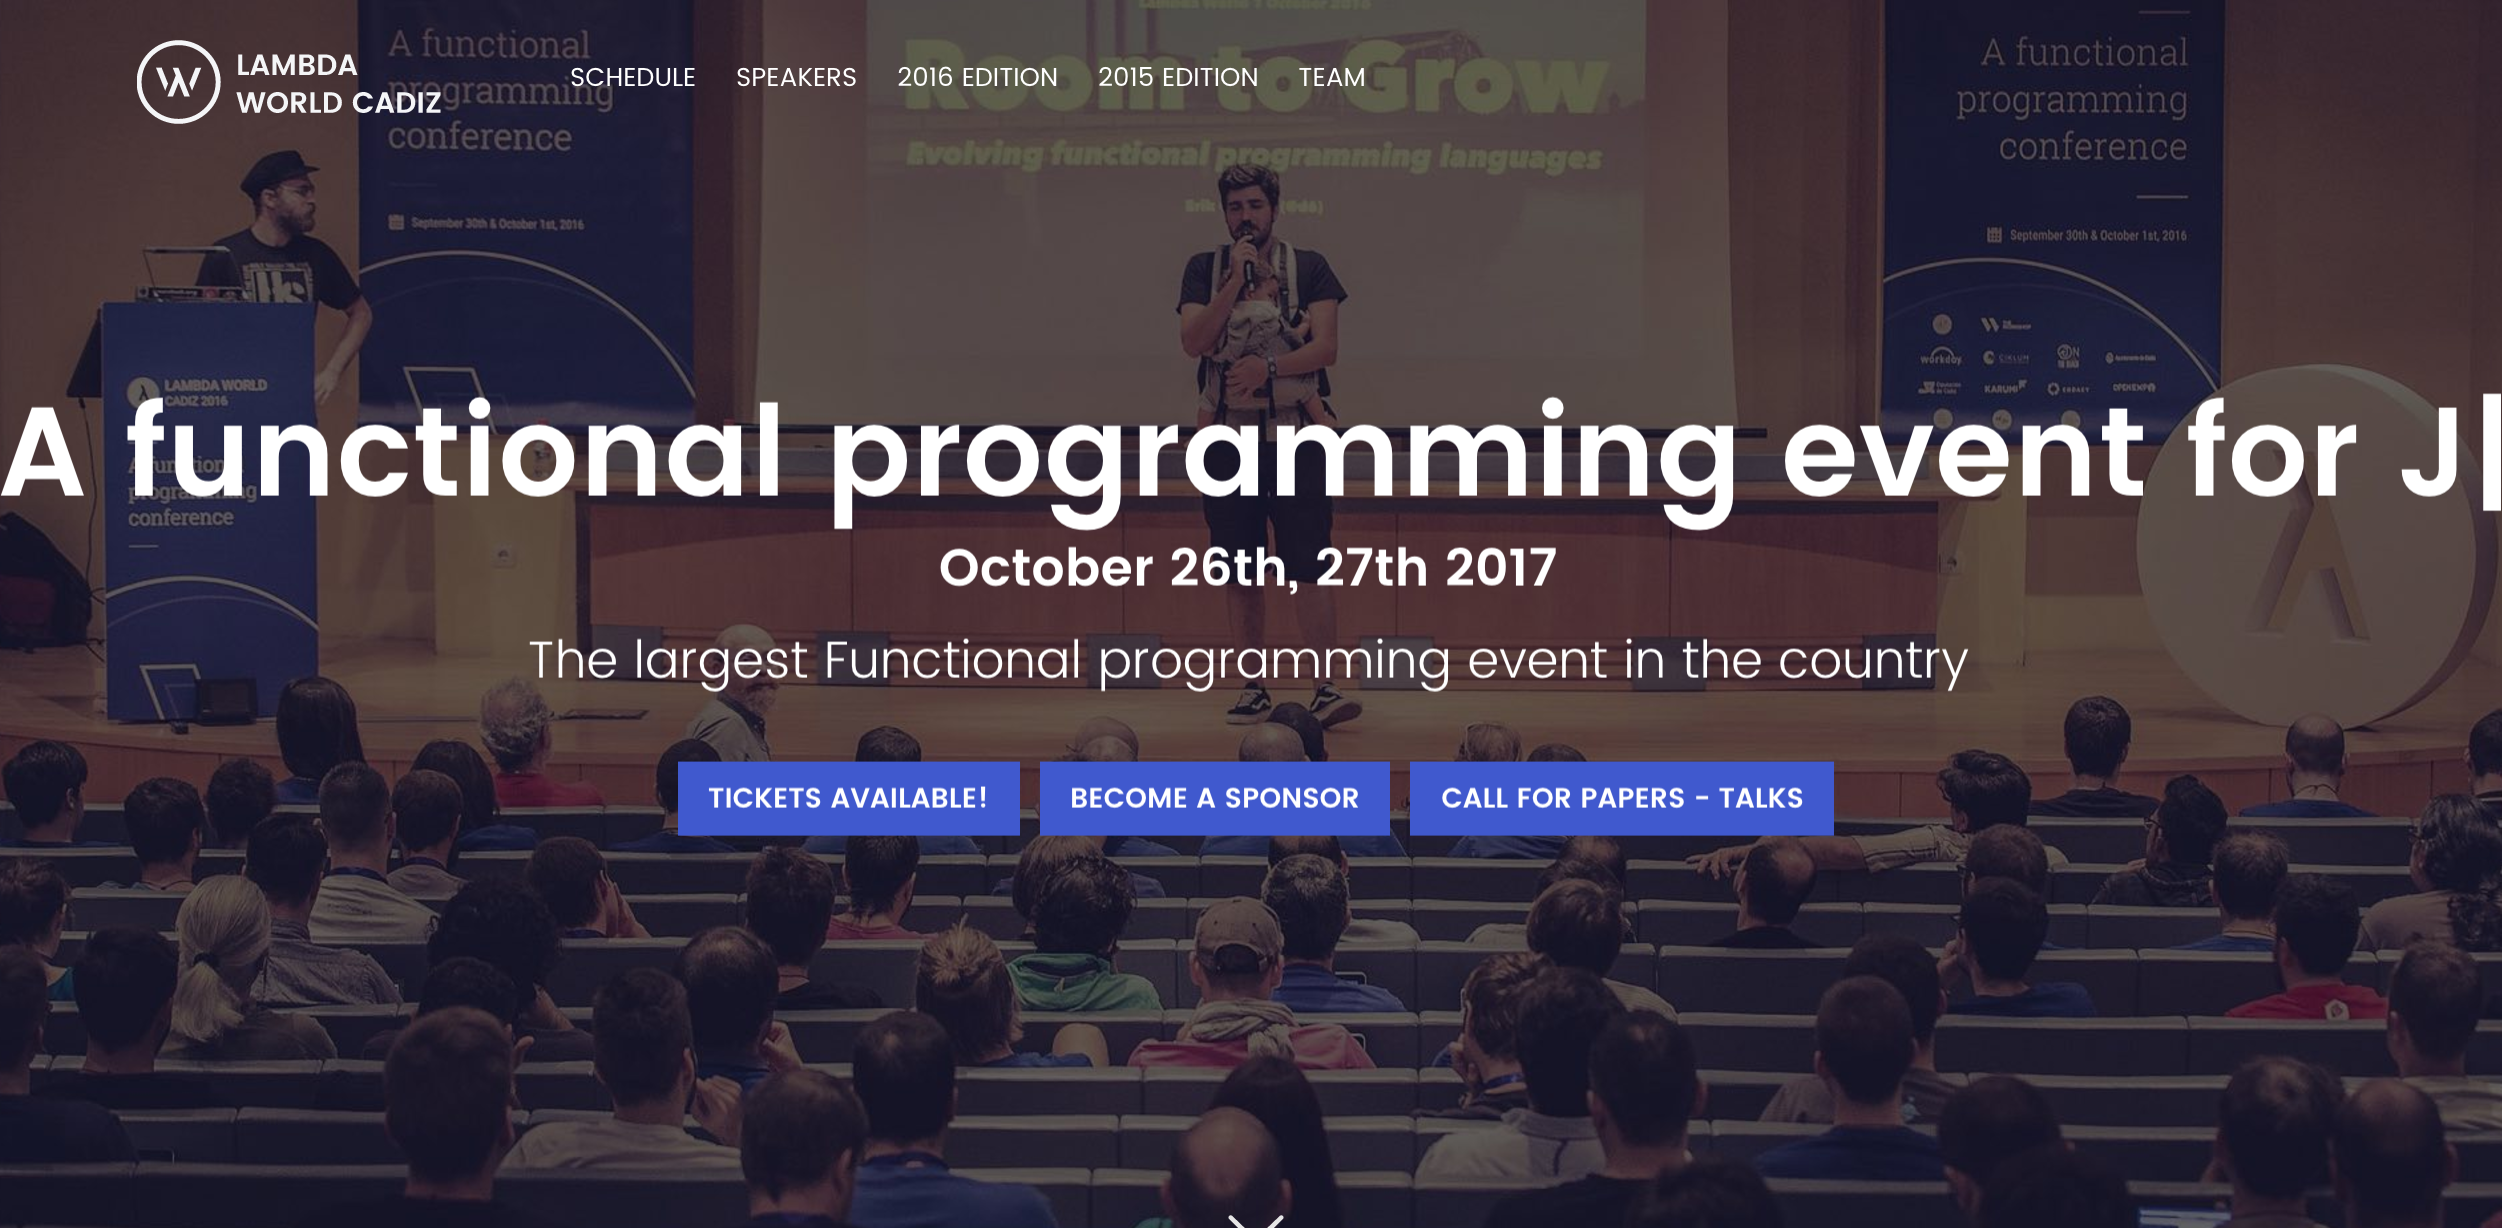 Becoming a functional programmer thanks to Lambda World